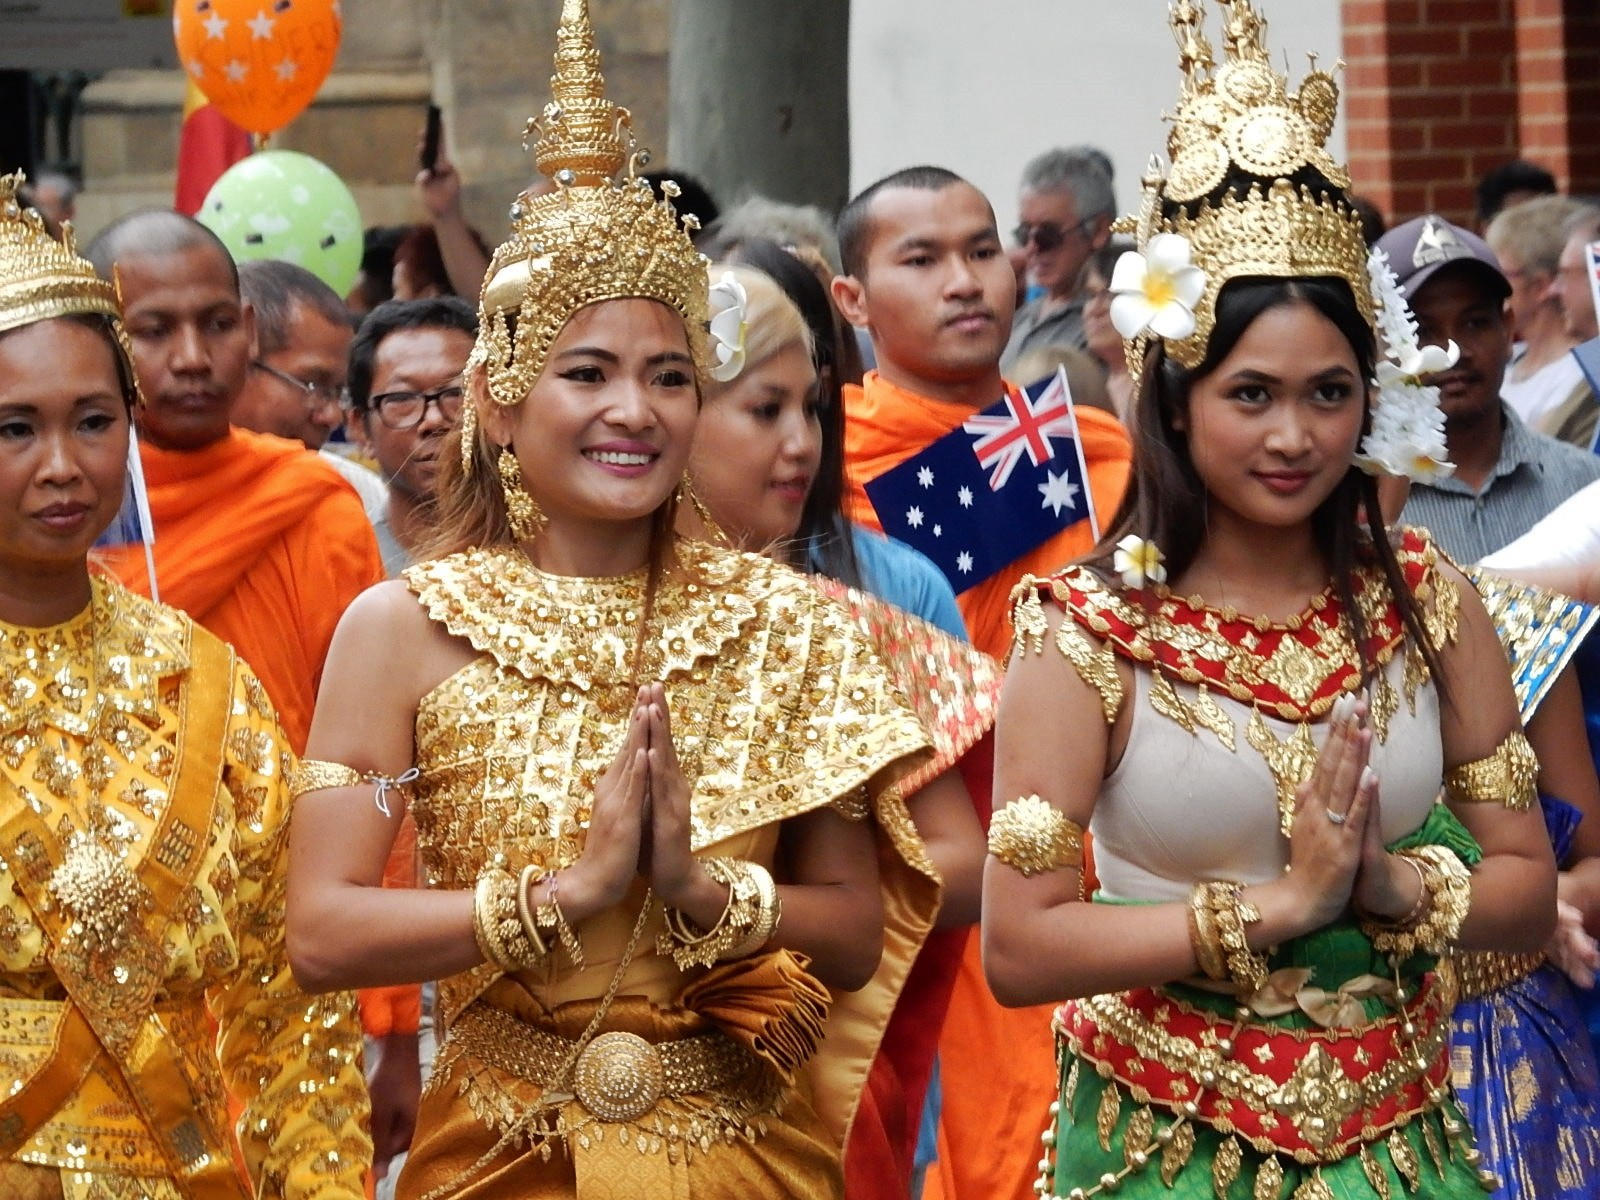 11 Beautiful Thai Names and What They Mean